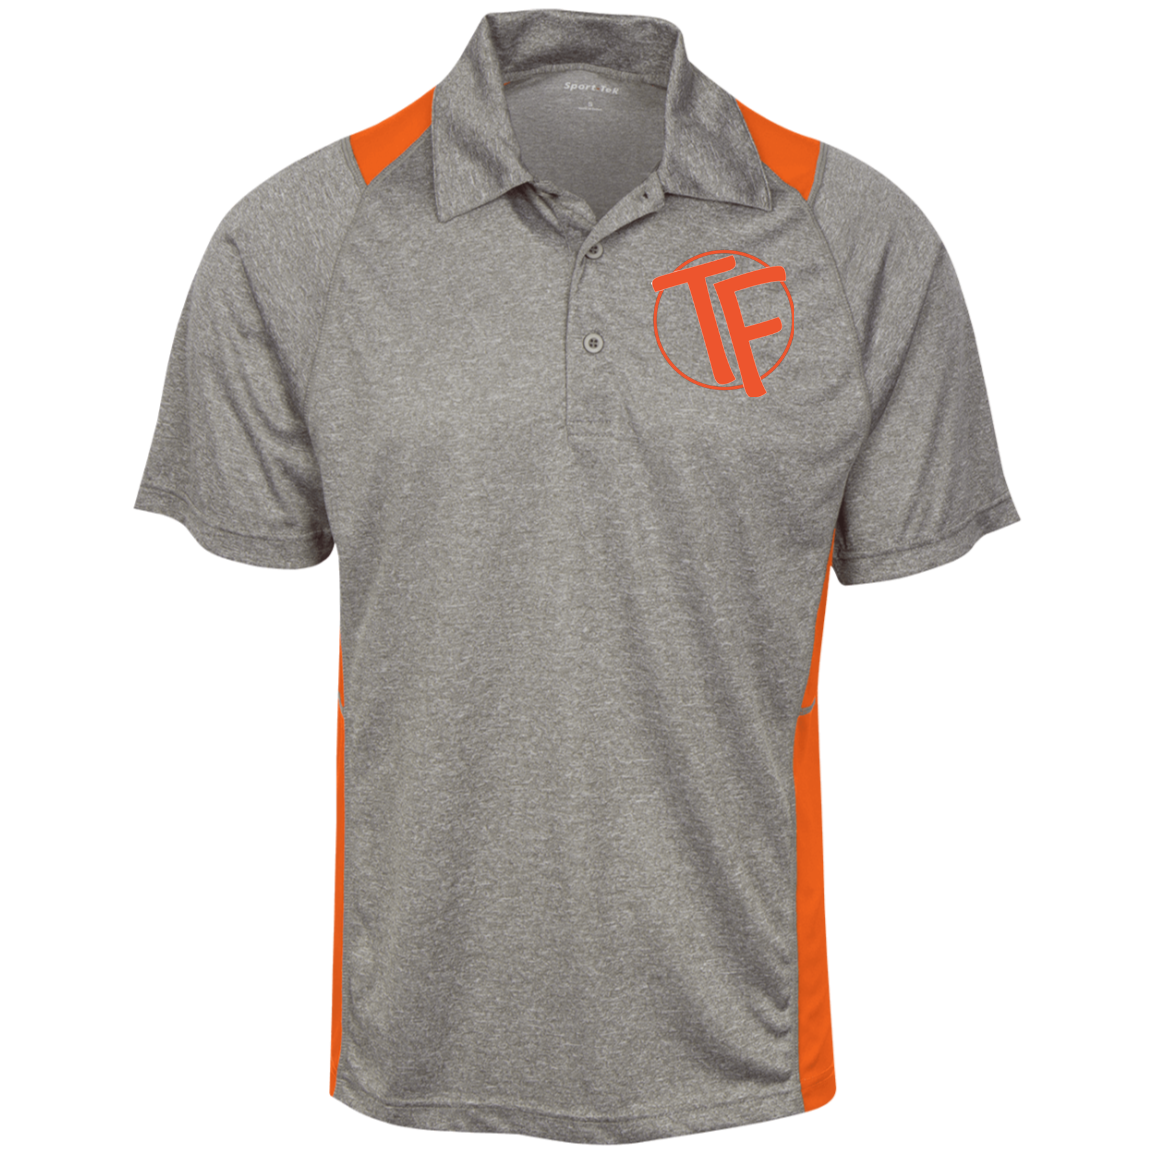 TYFE Gray/Orange Men's Moisture Wicking Polo